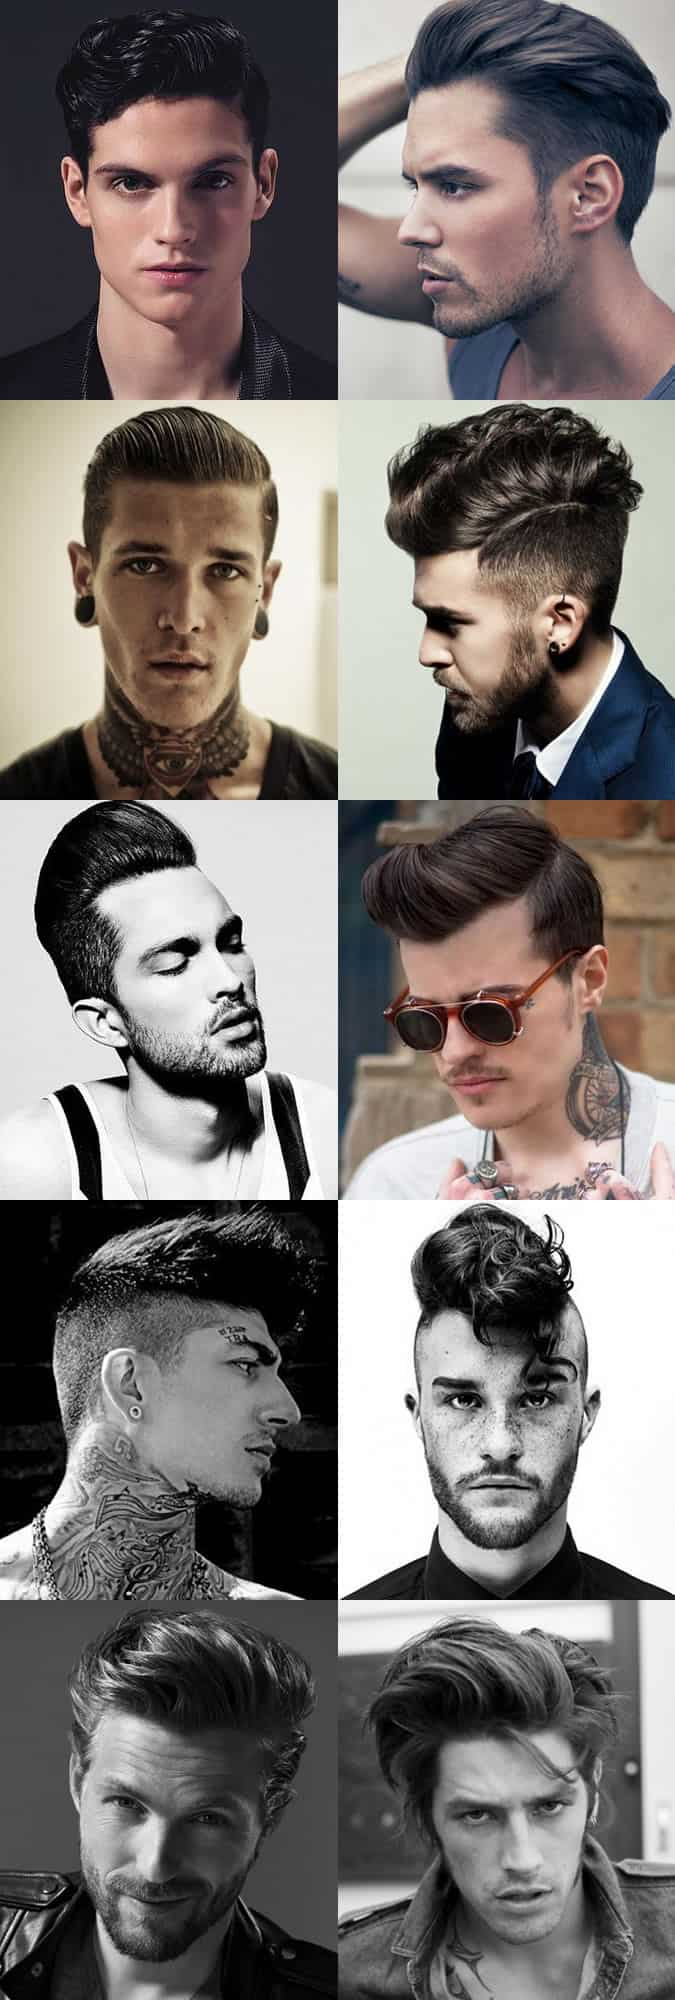 Men's Modern Rockabilly-Inspired Hairstyles